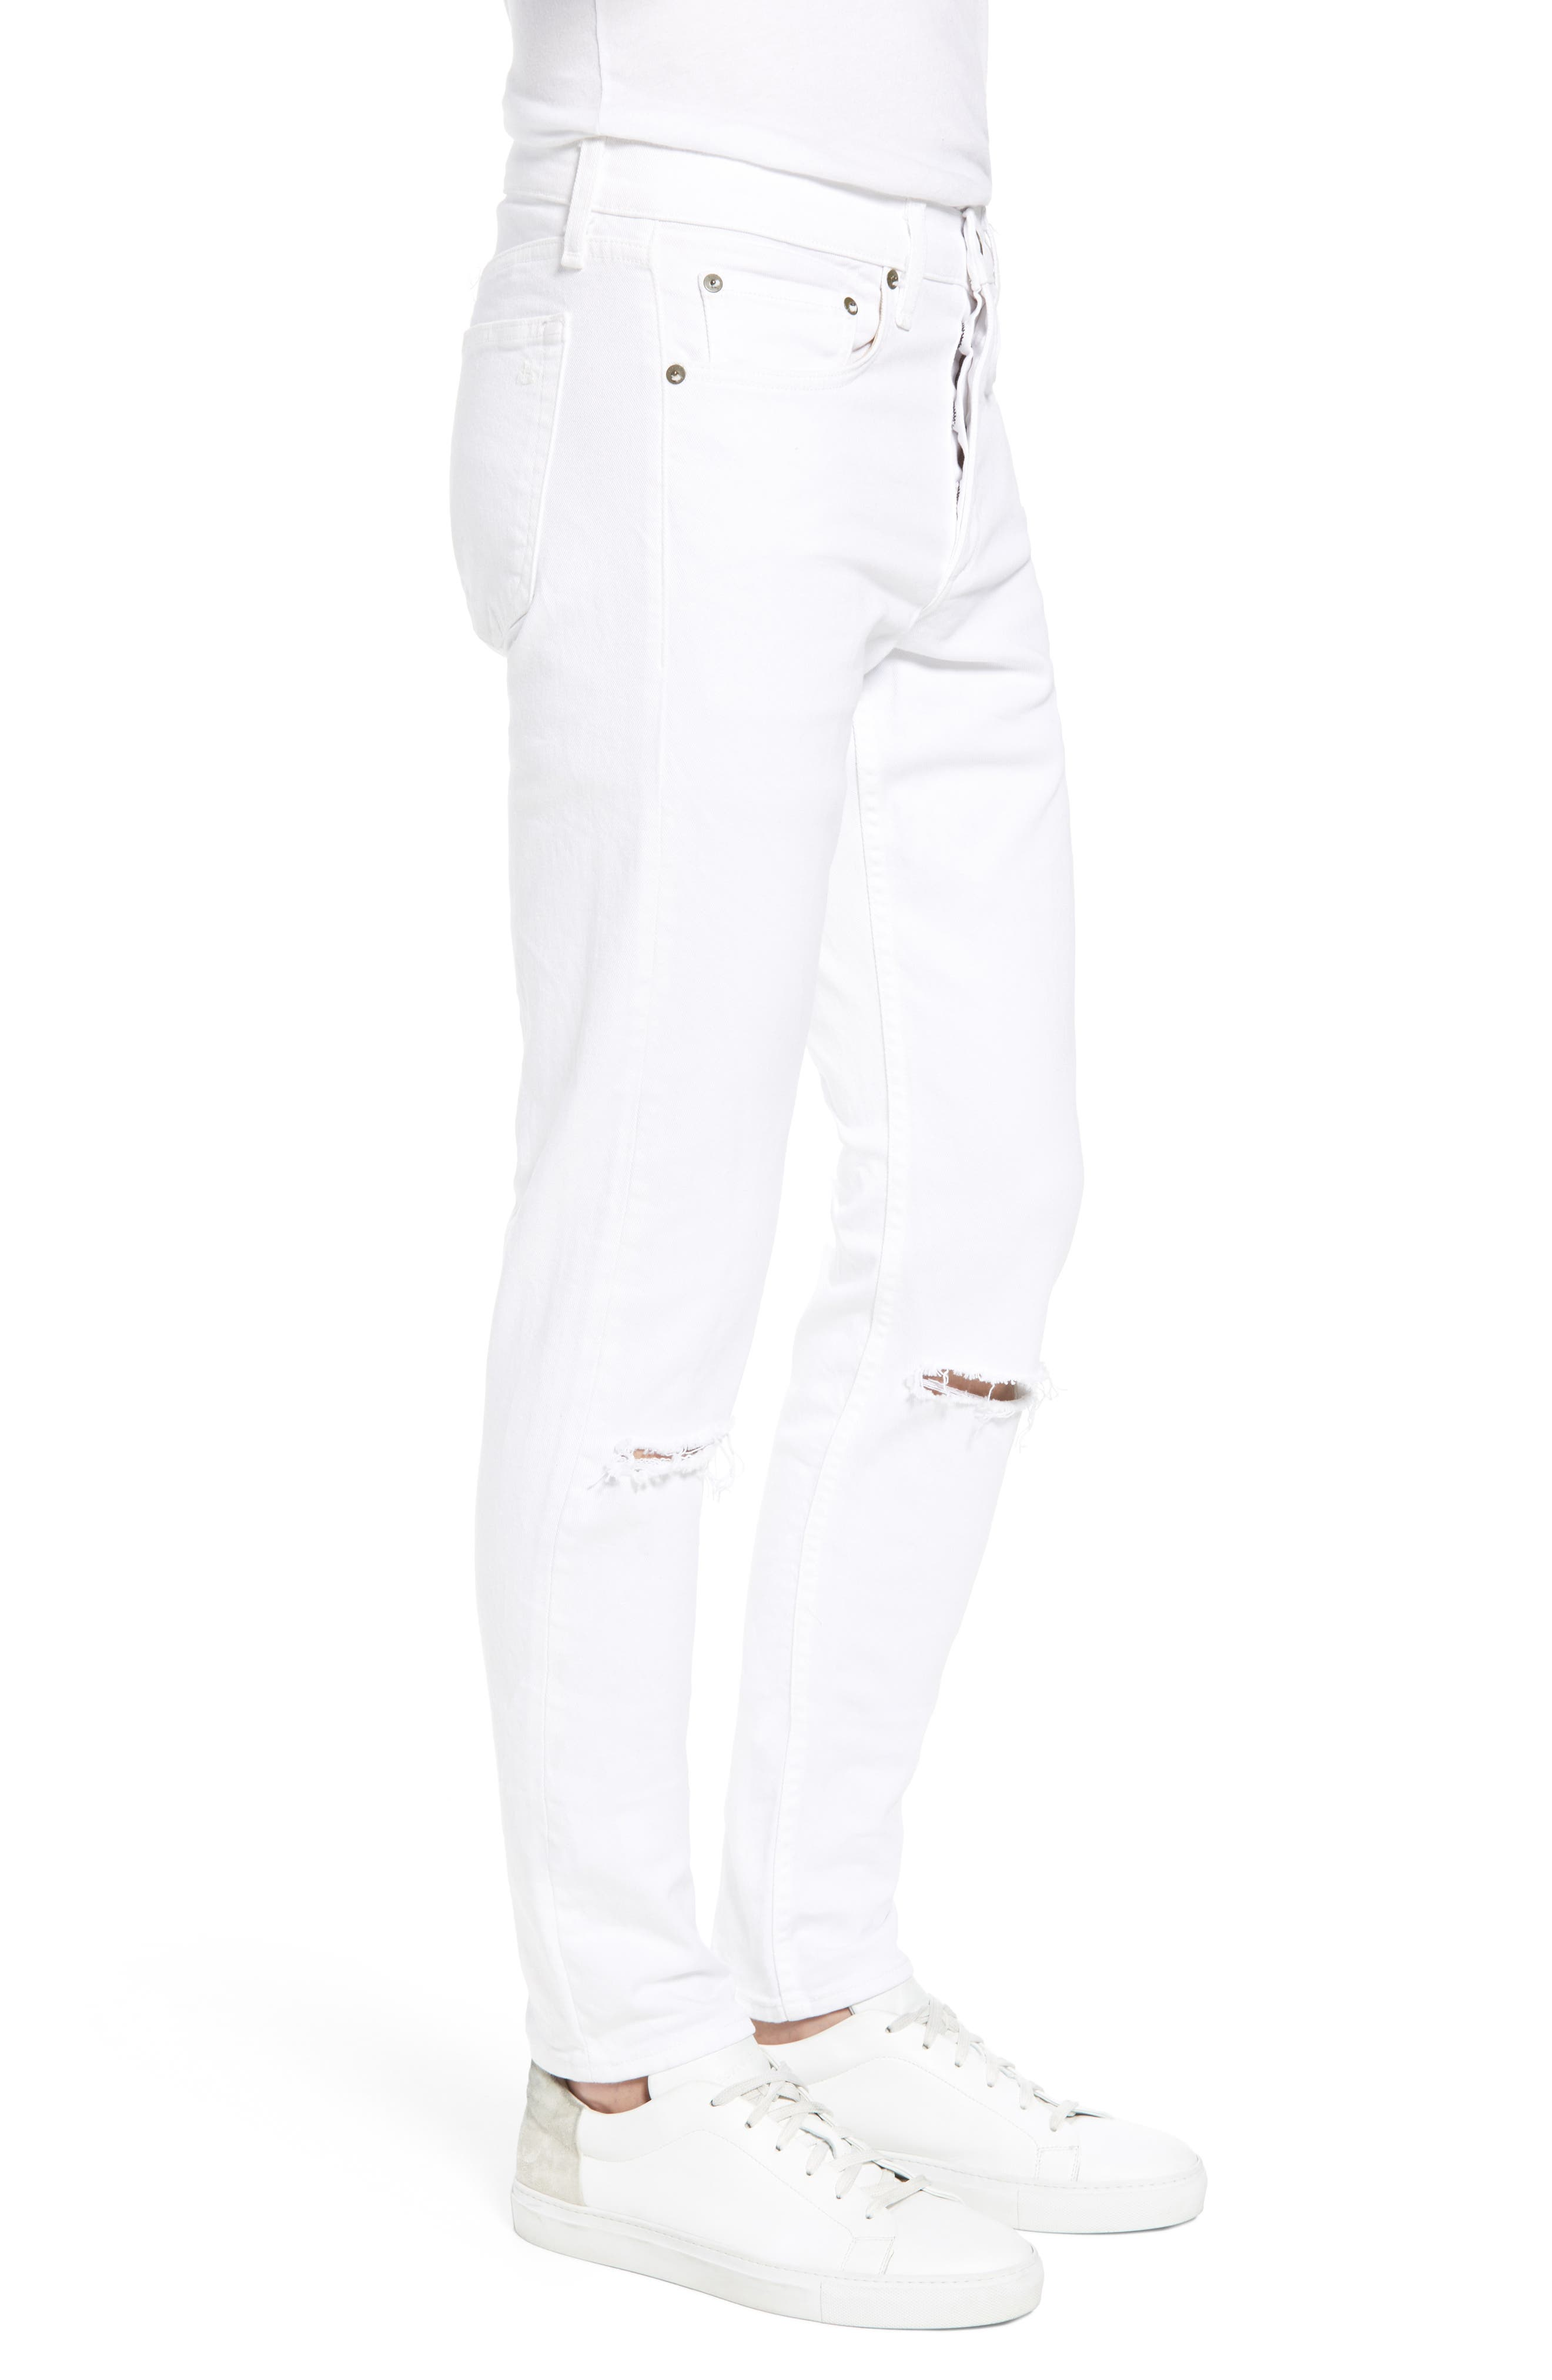 Fit 1 Skinny Fit Jeans,                             Alternate thumbnail 3, color,                             100